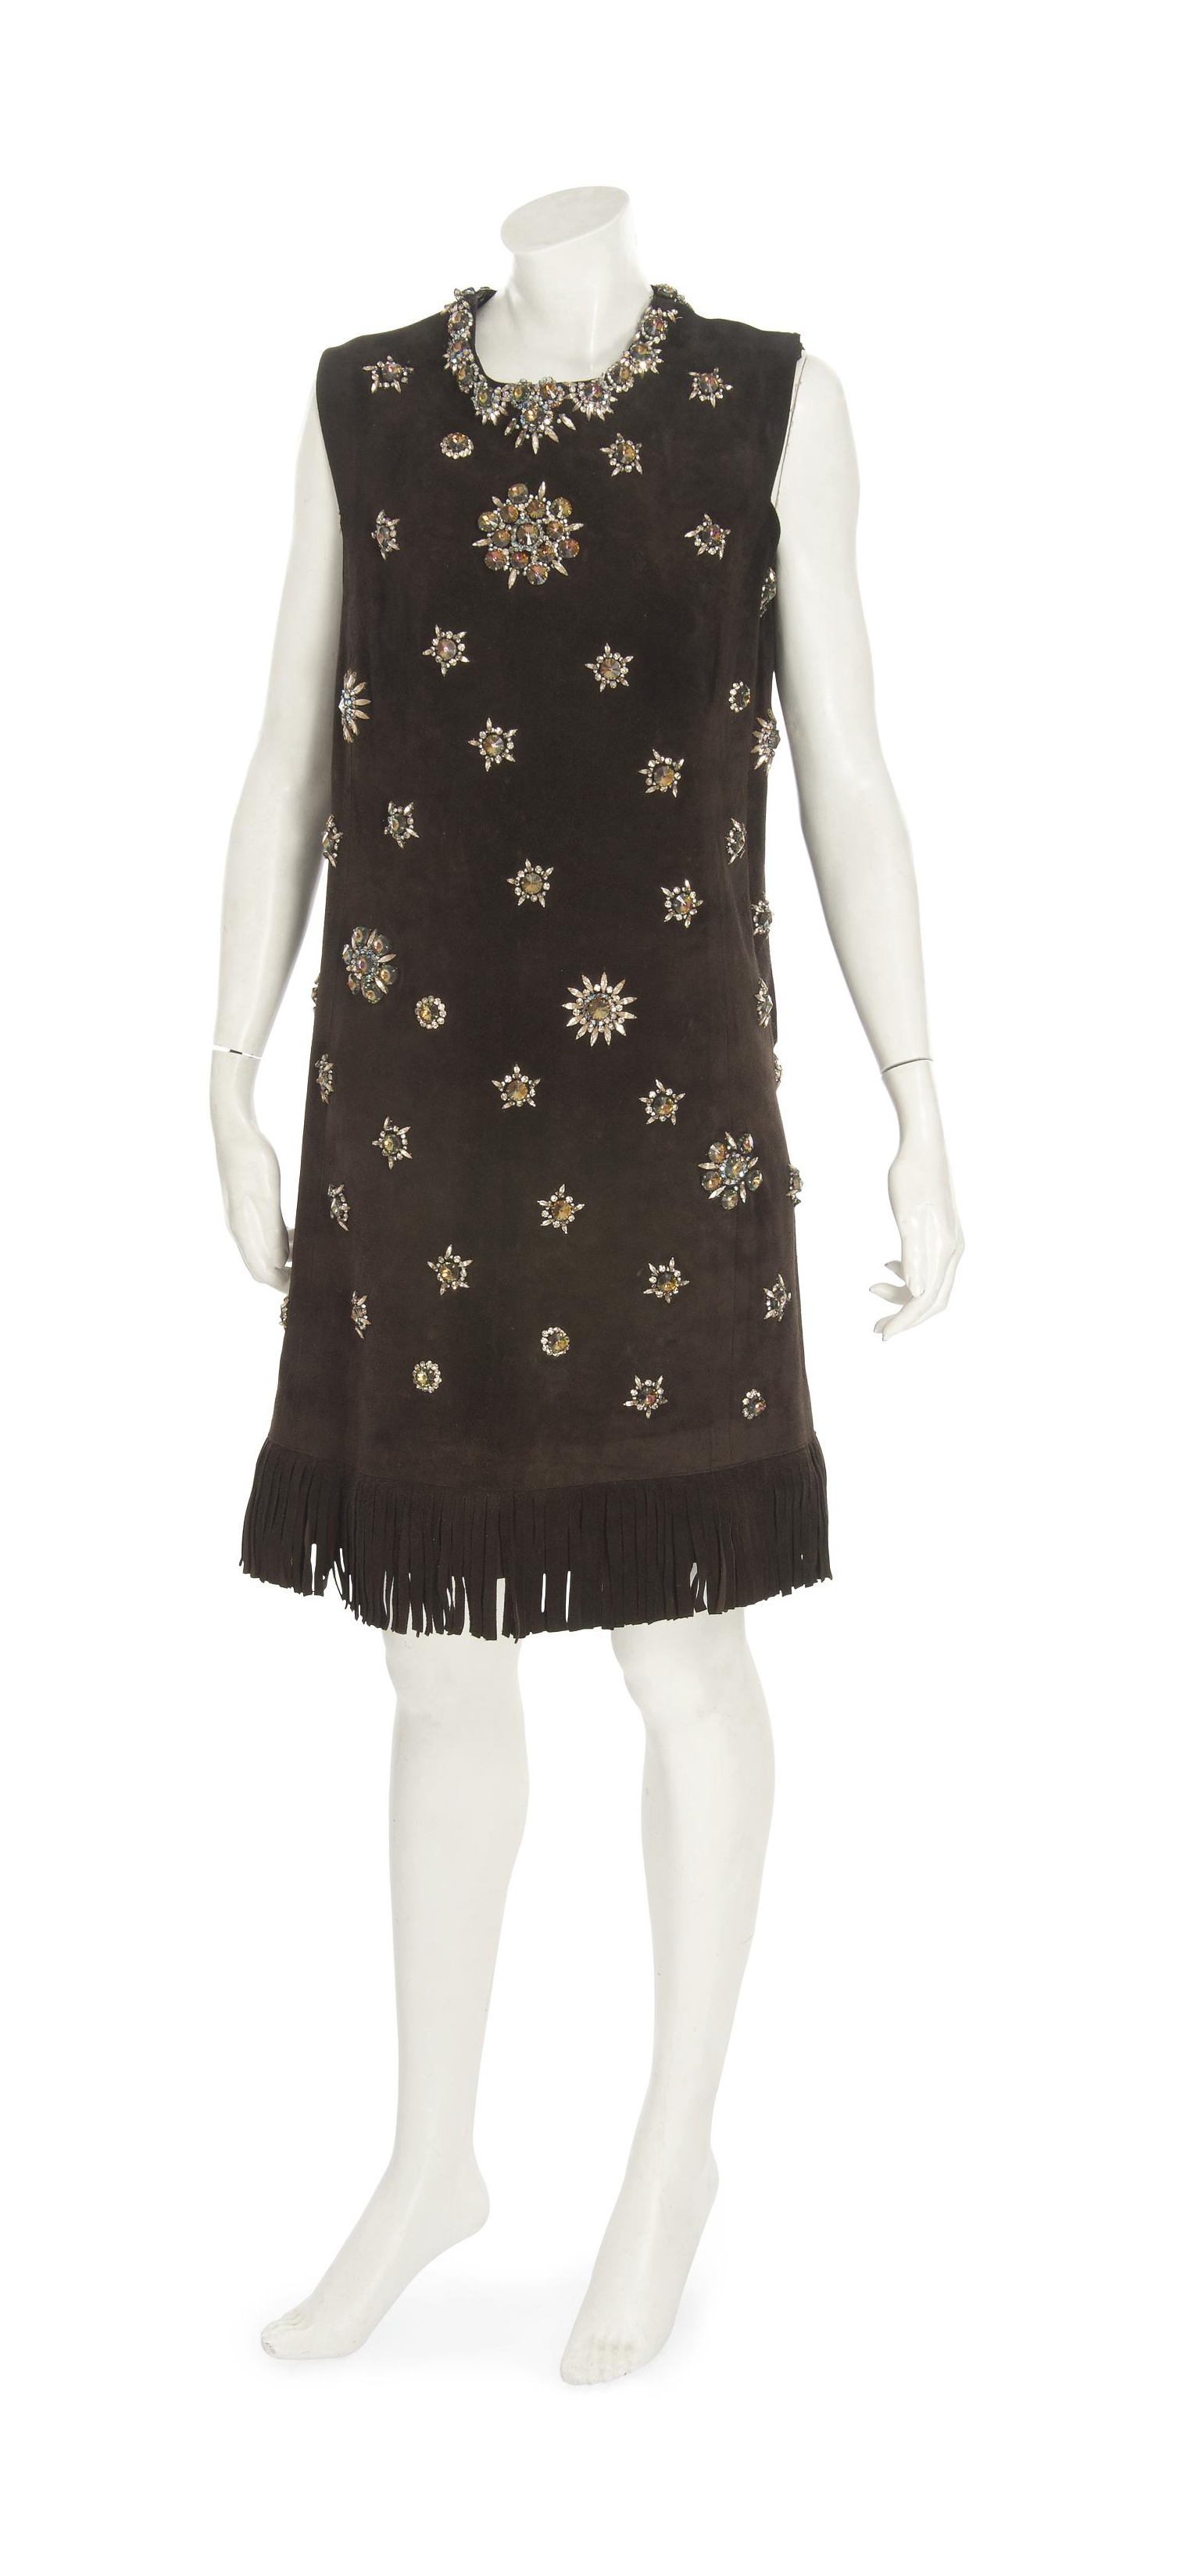 A BROWN SUEDE MINI DRESS